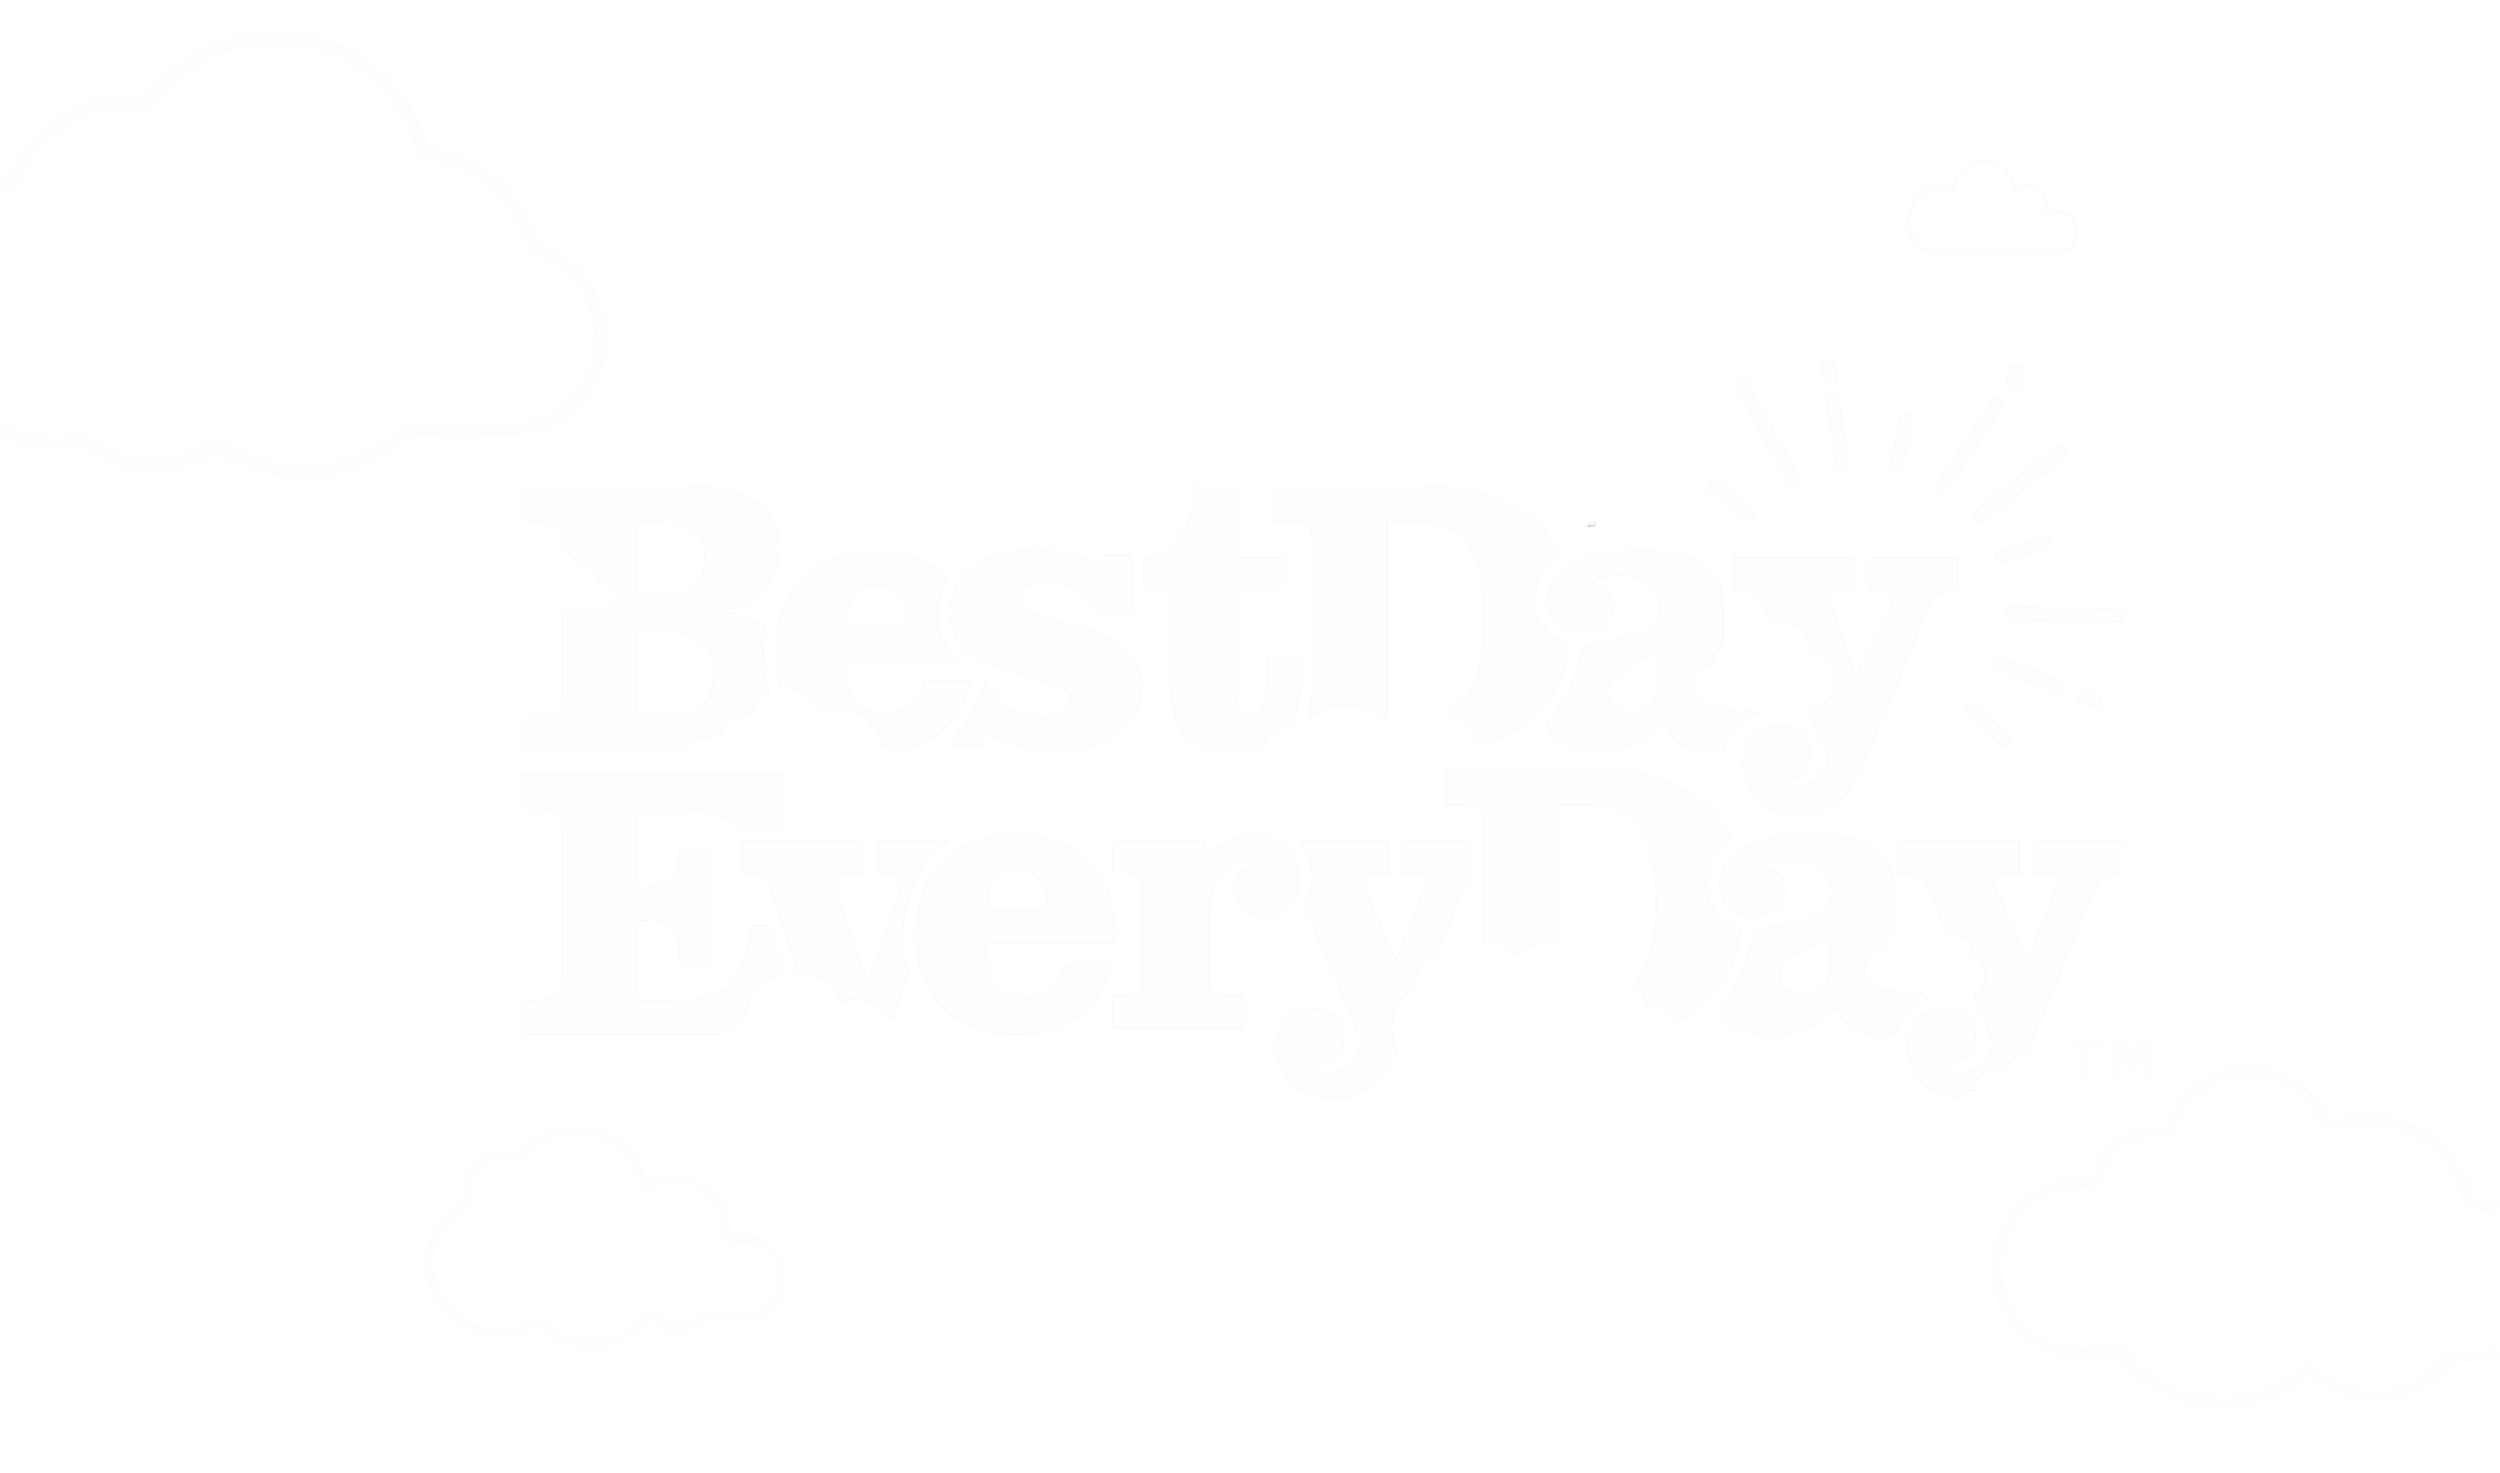 best day every day logo